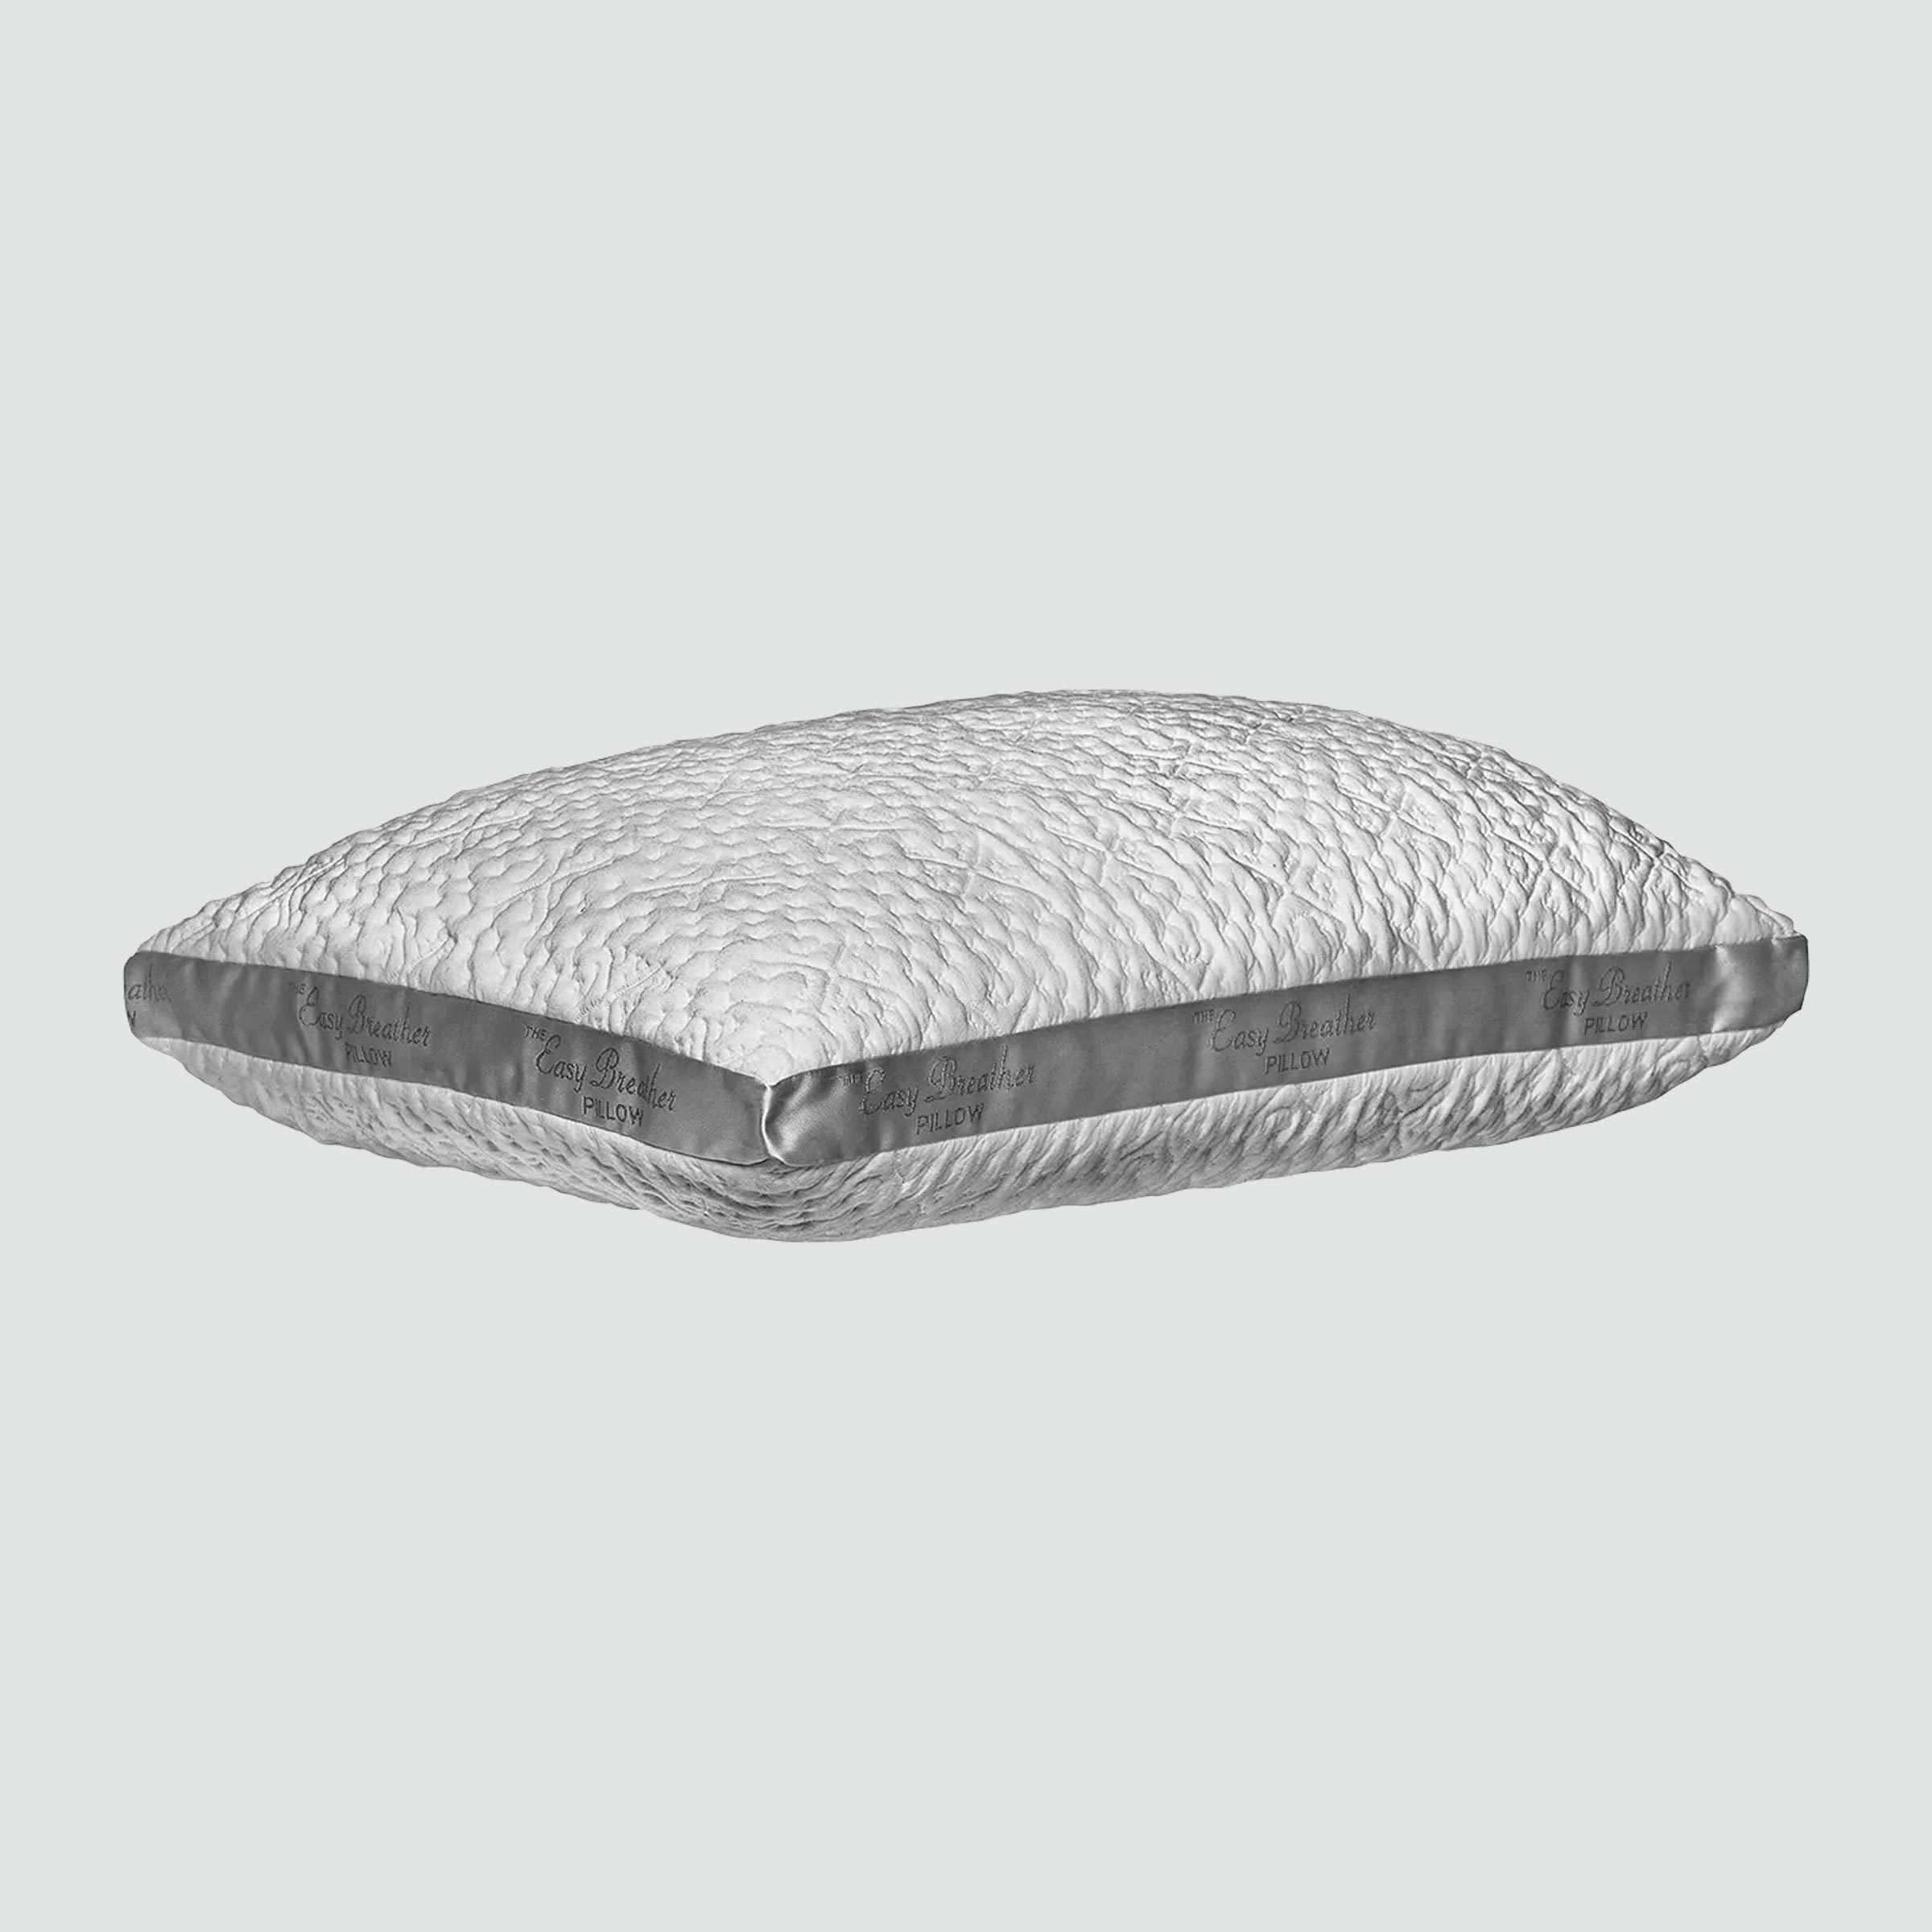 Nest Bedding The Easy Breather Bedding Pillow